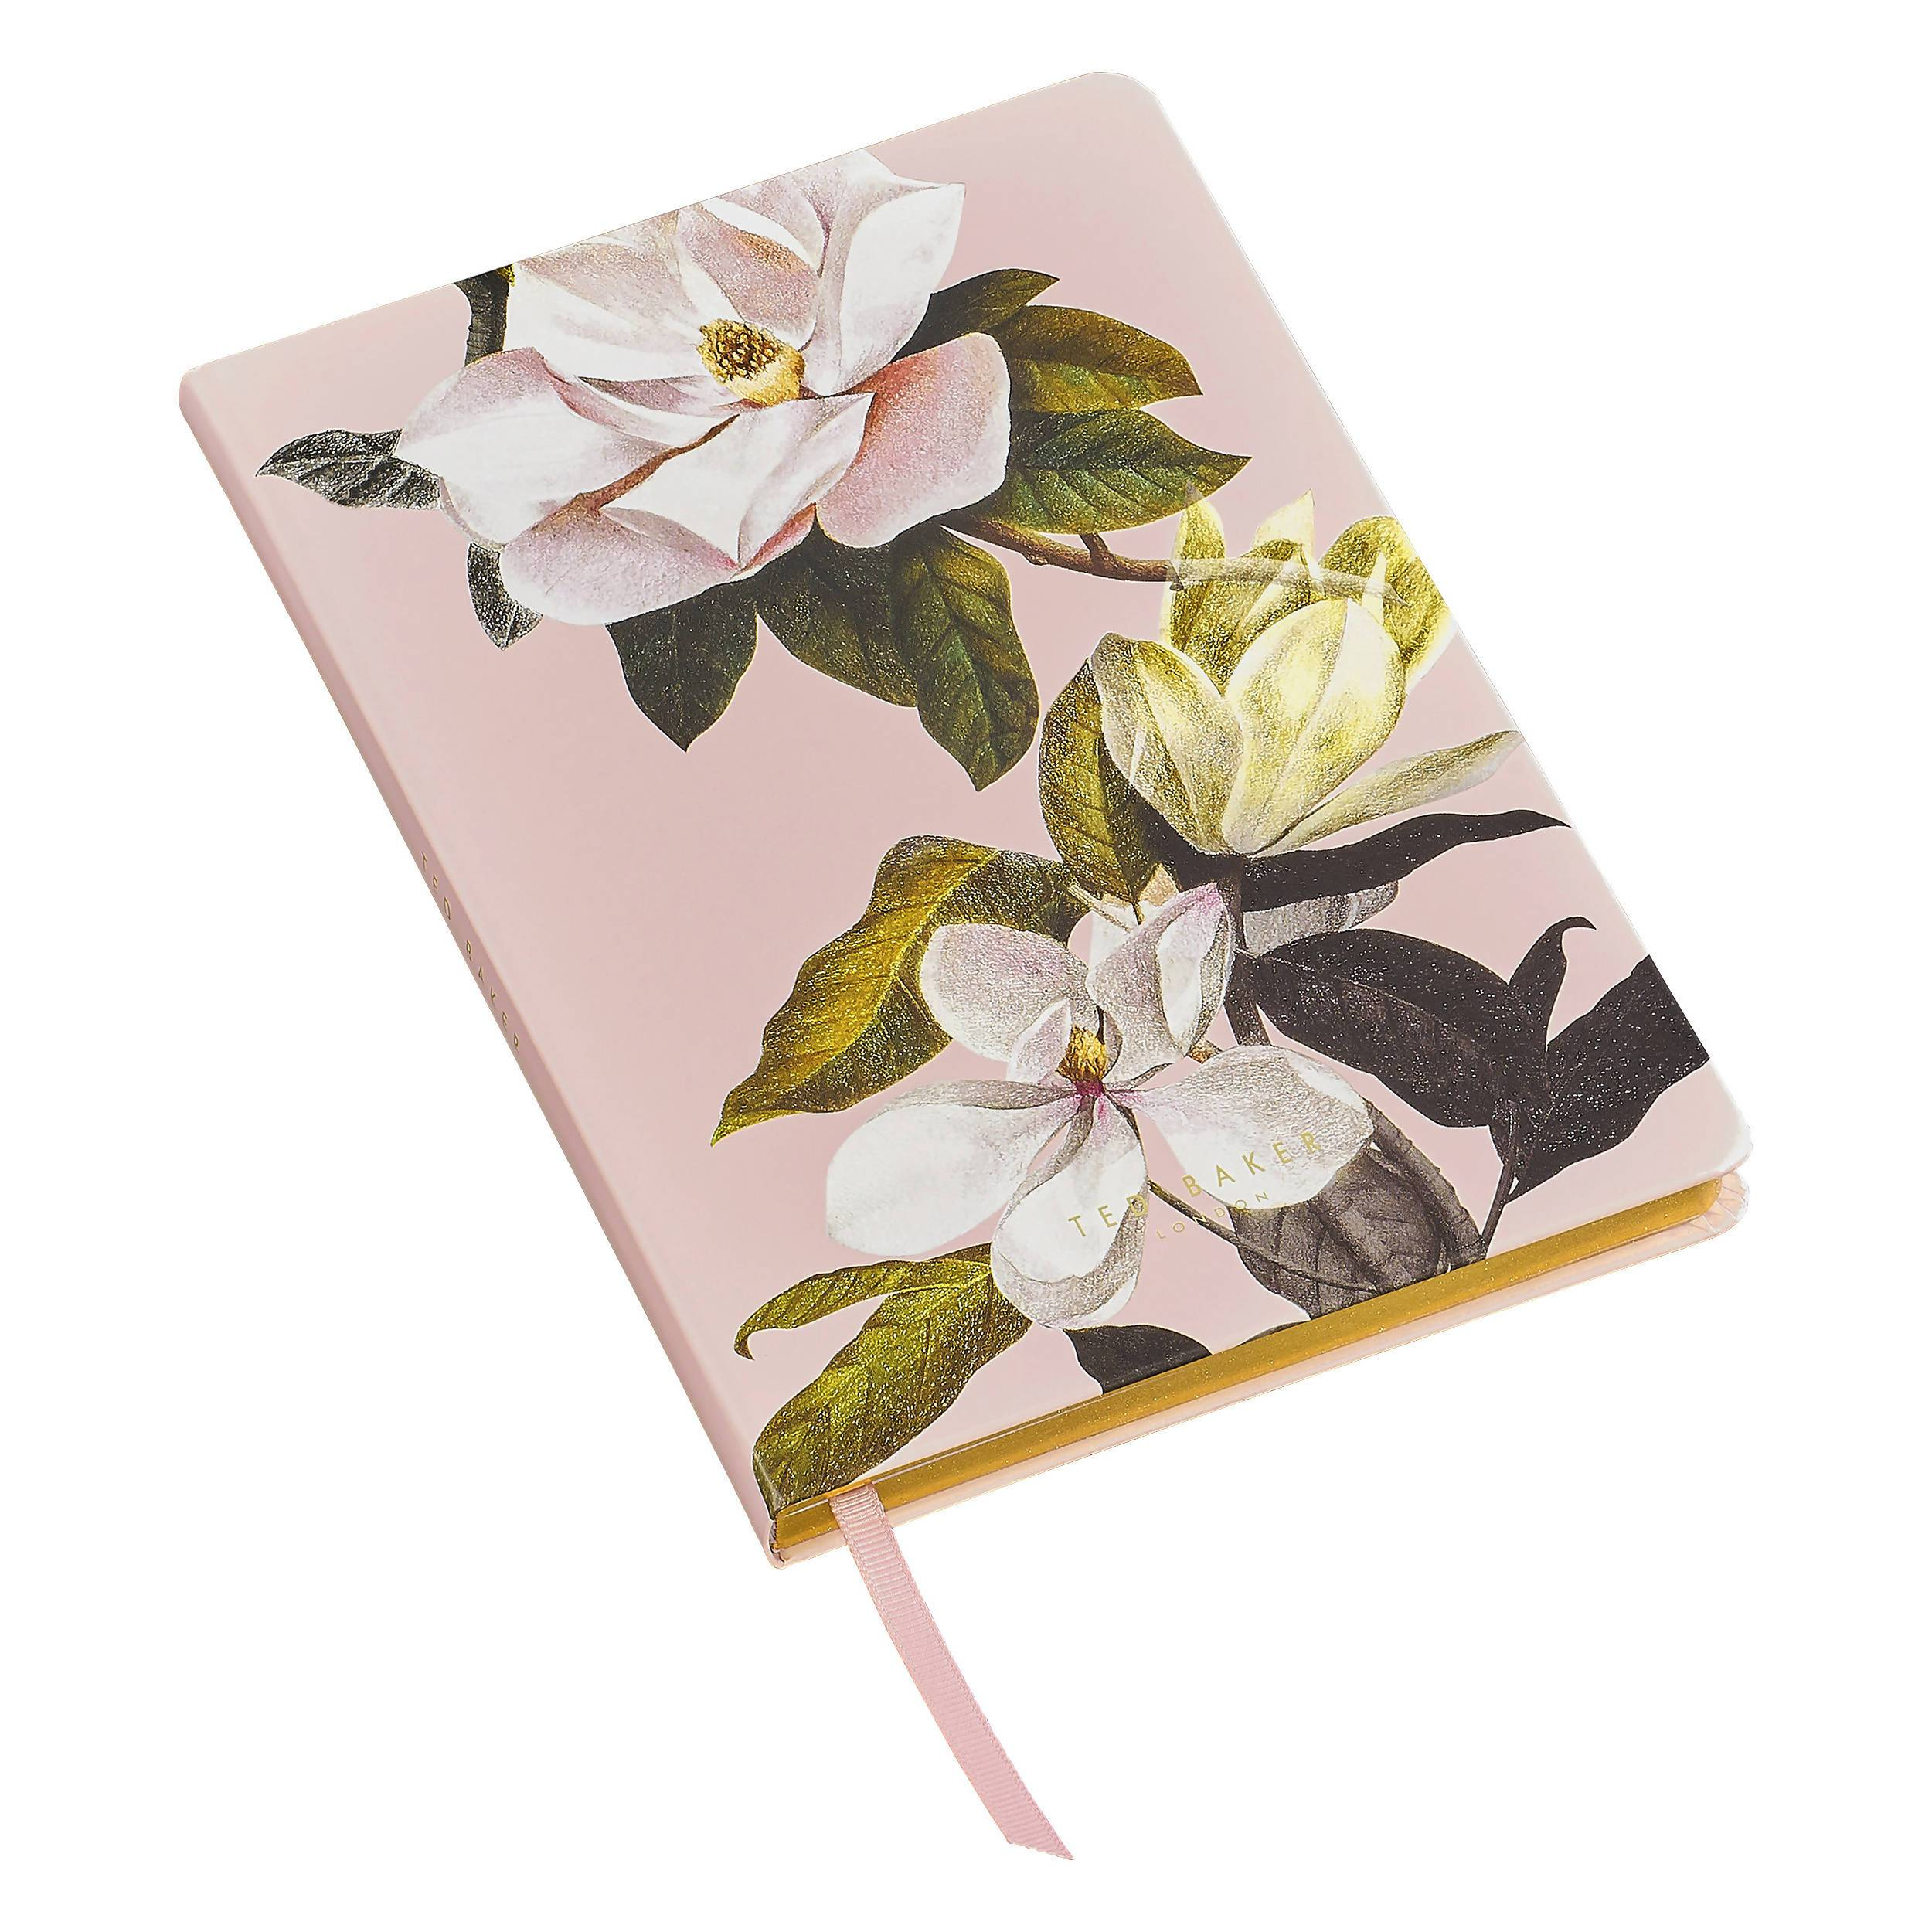 Ted Baker - A5 Notebook, Pink Opal - Notebooks - The Planet Collection - Naiise